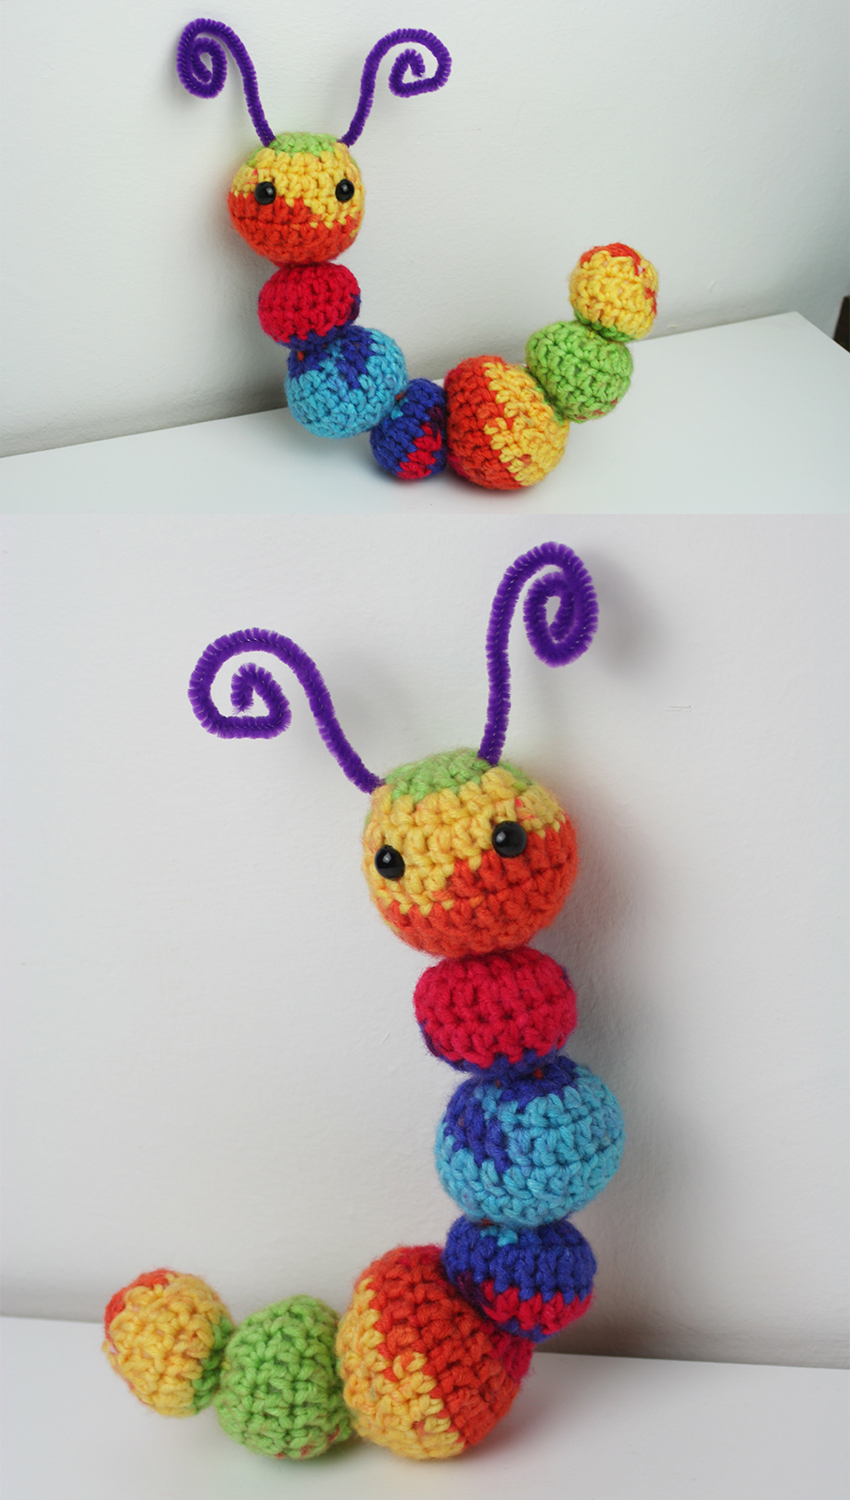 Crochet Rainbow Caterpillar Pattern